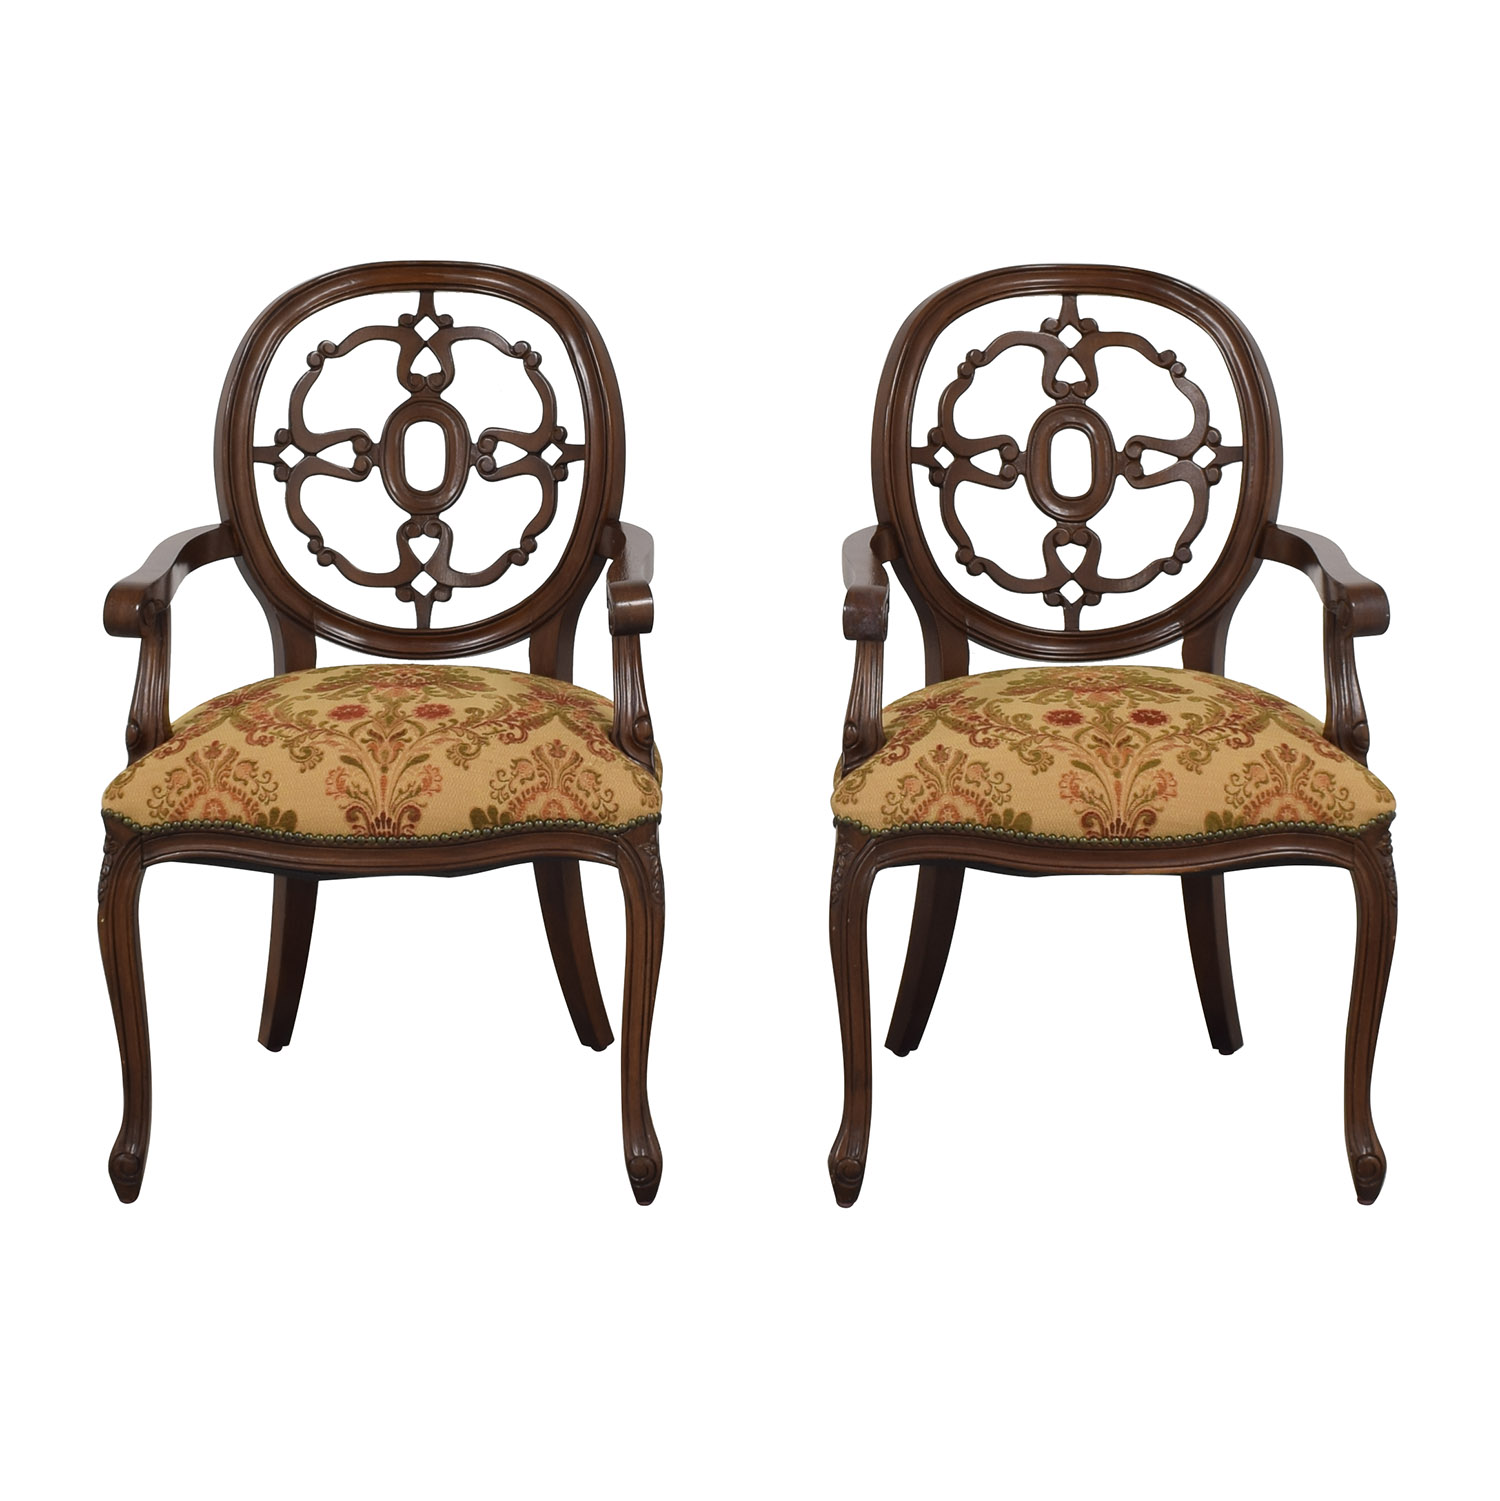 Floral Upholstered Armchairs with Antique Finish dimensions